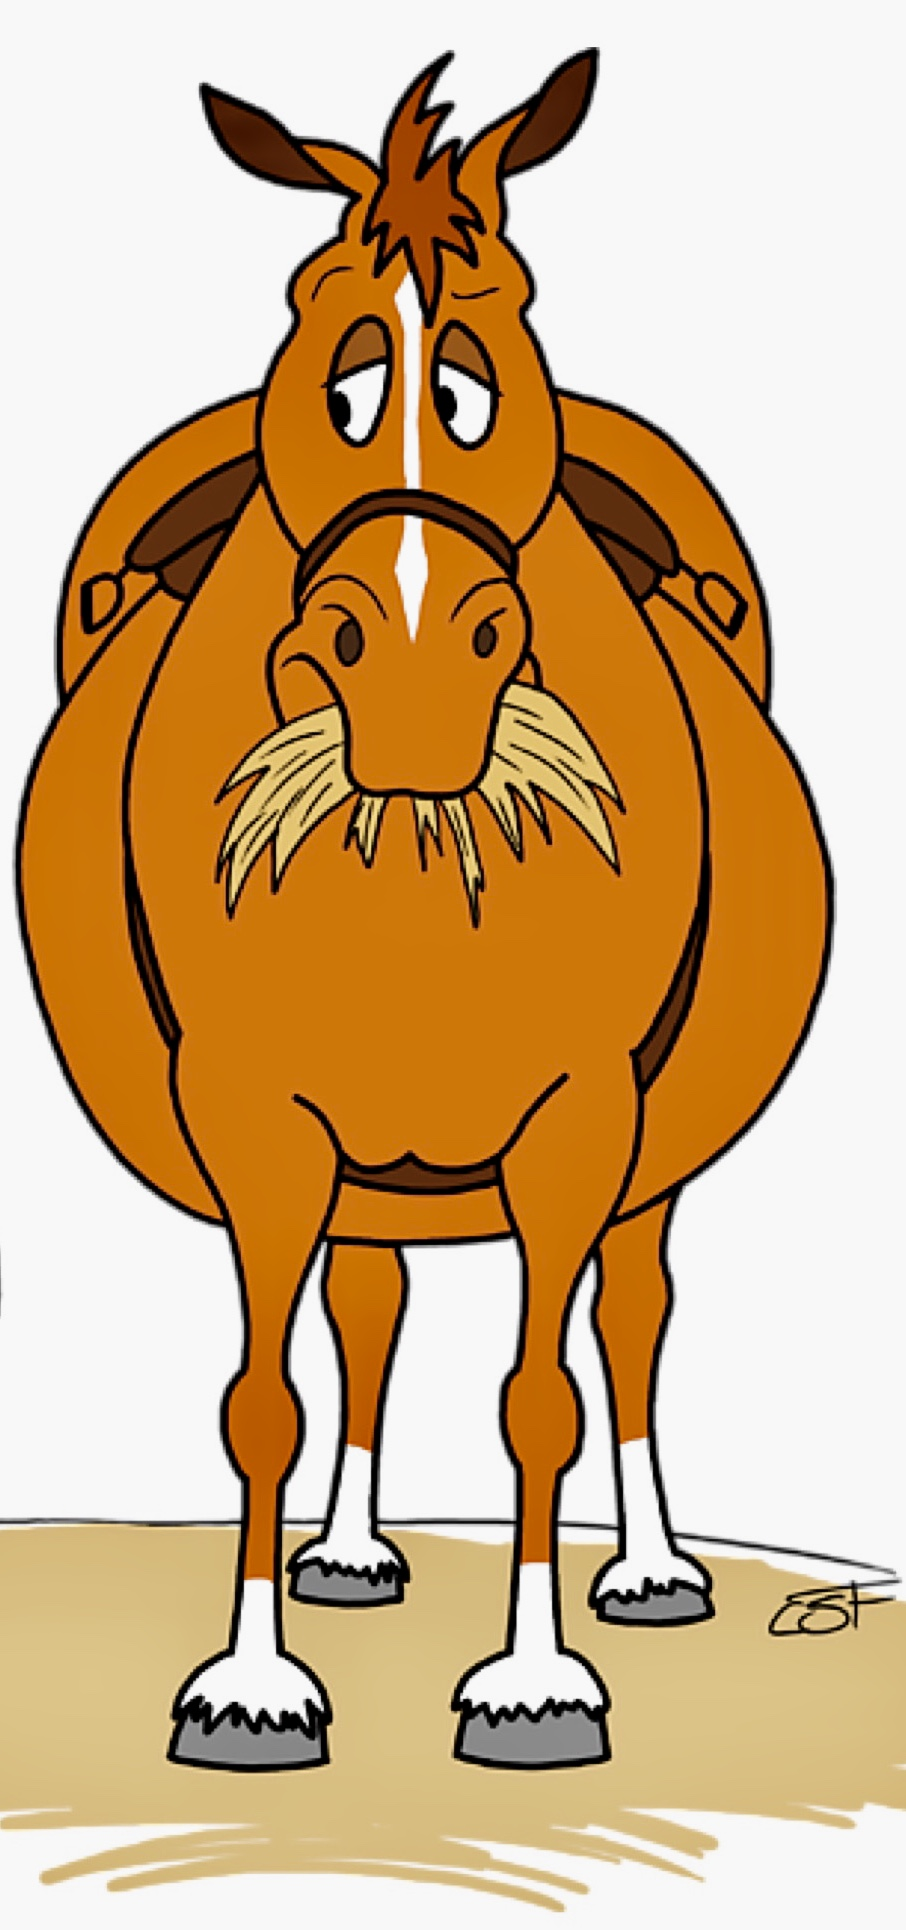 Funny Fat Cartoon Horse Clipart